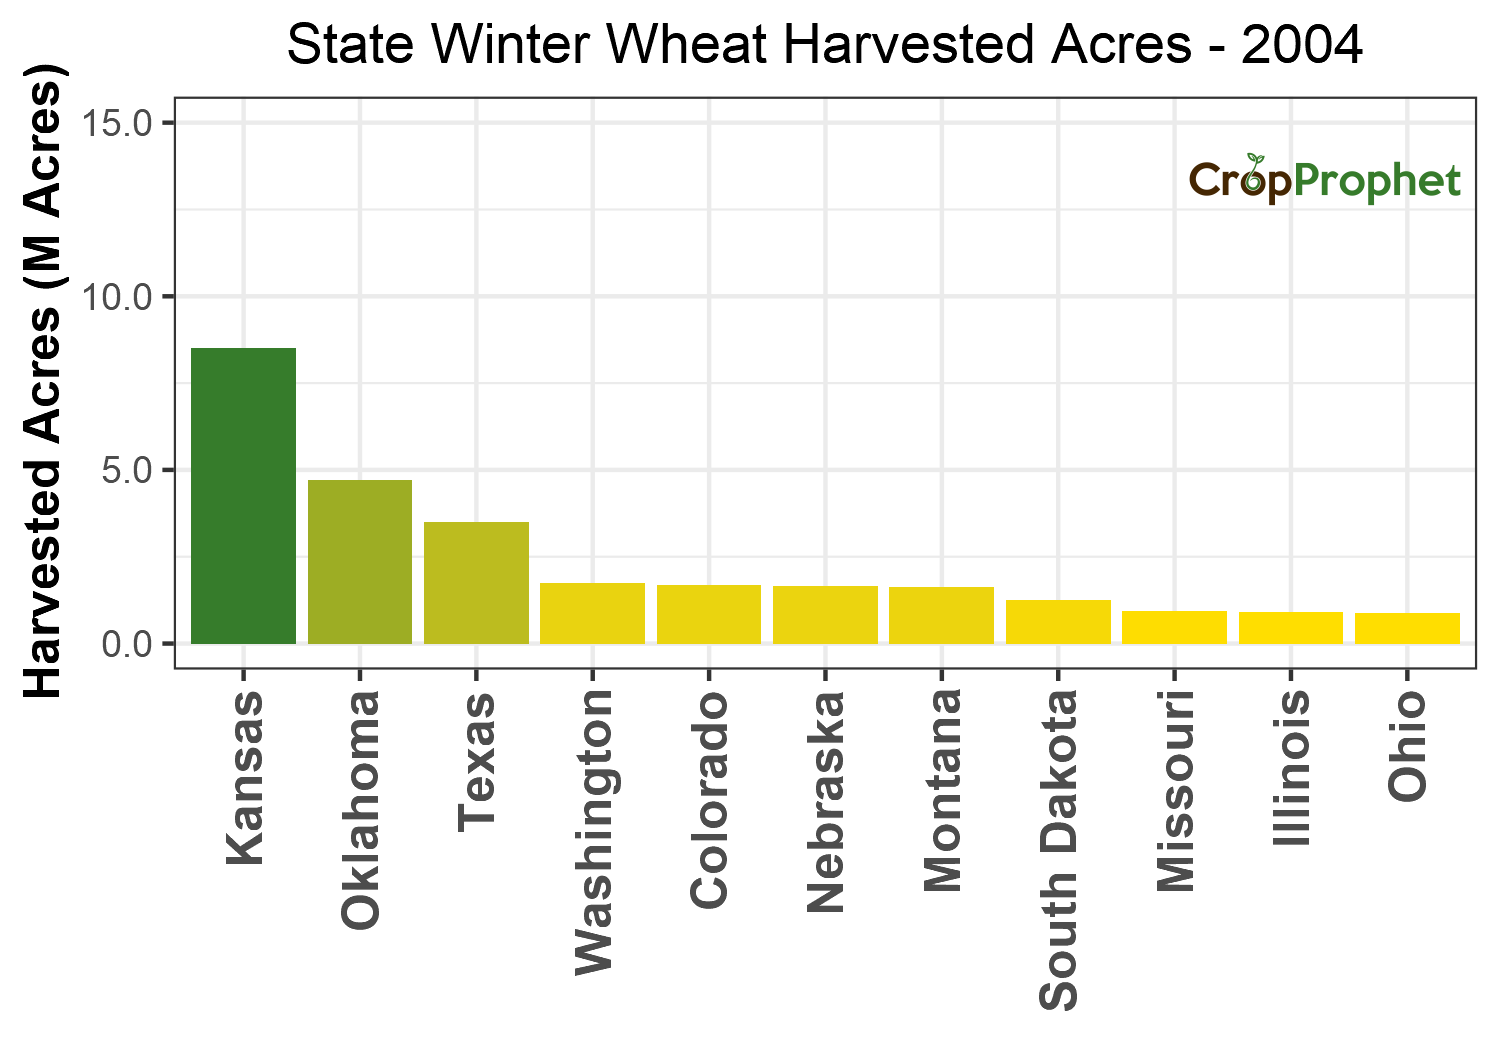 Winter wheat Harvested Acres by State - 2004 Rankings